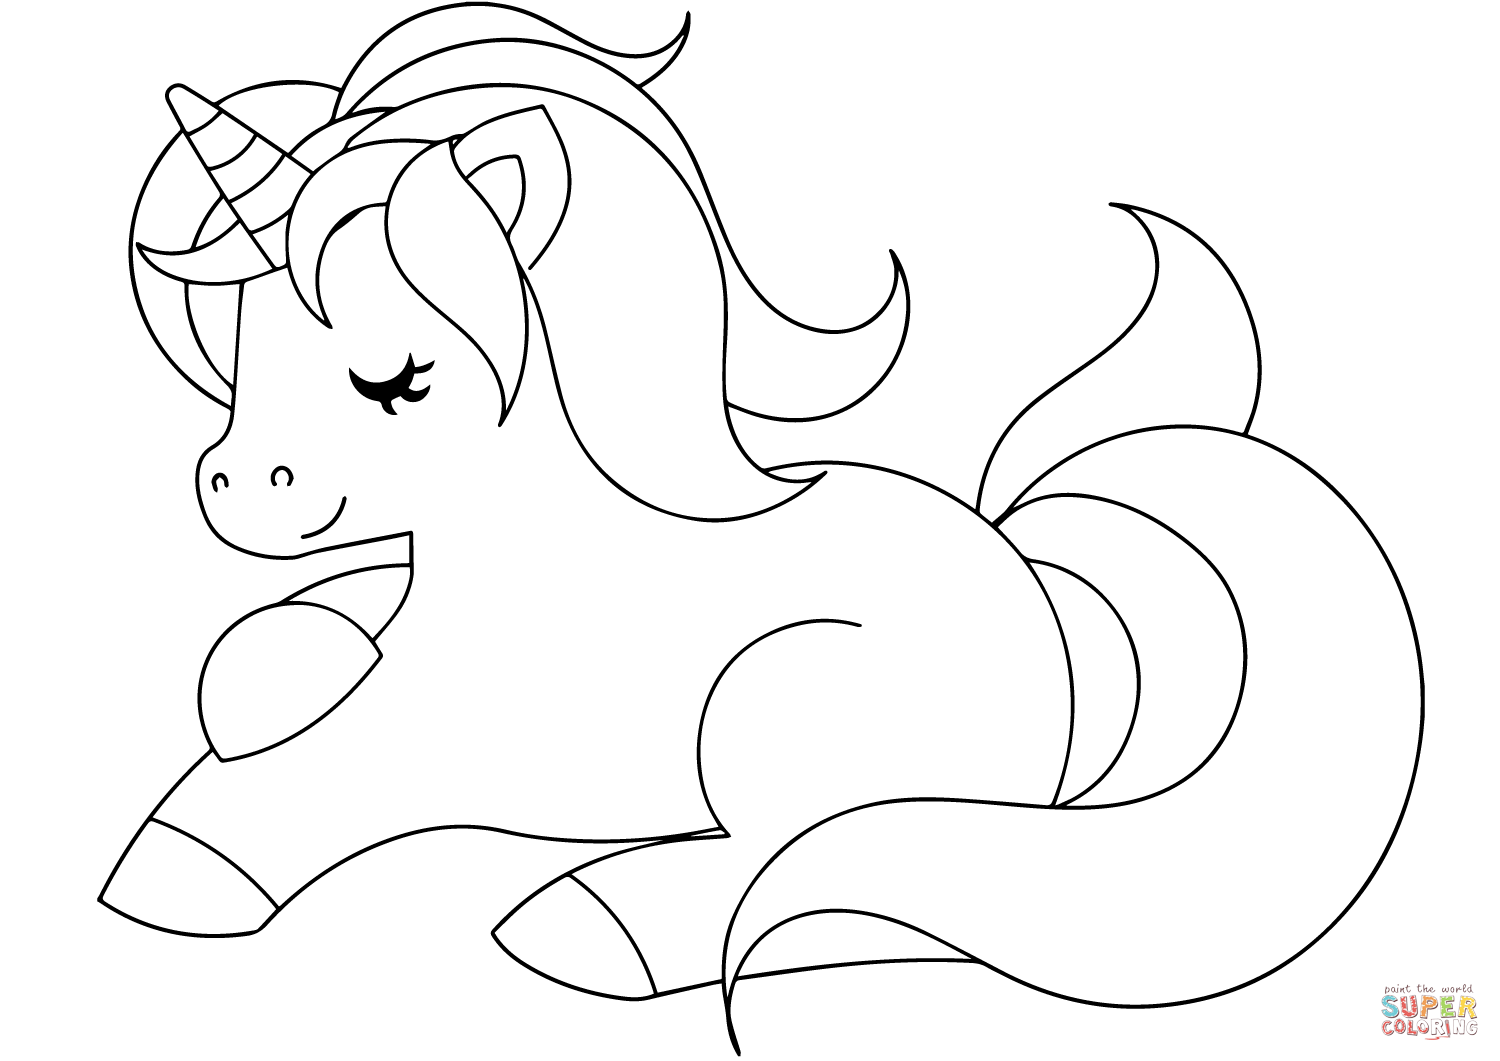 coloring pictures of unicorns unicorn coloring pages to download and print for free of coloring unicorns pictures